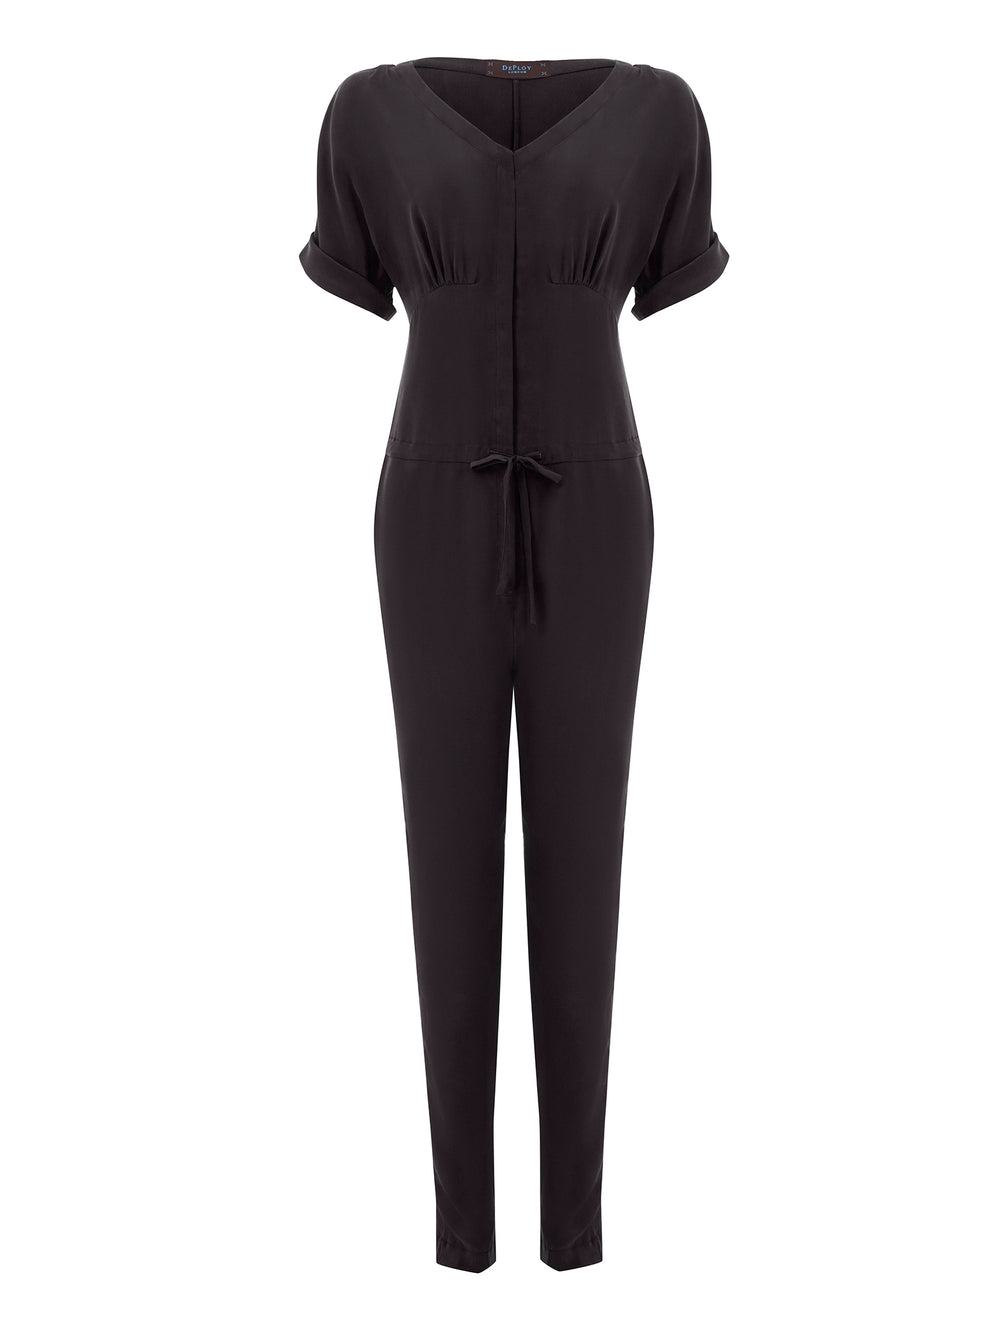 T040C_ACER_Sand-Washed Silk Jumpsuit_Classic Black